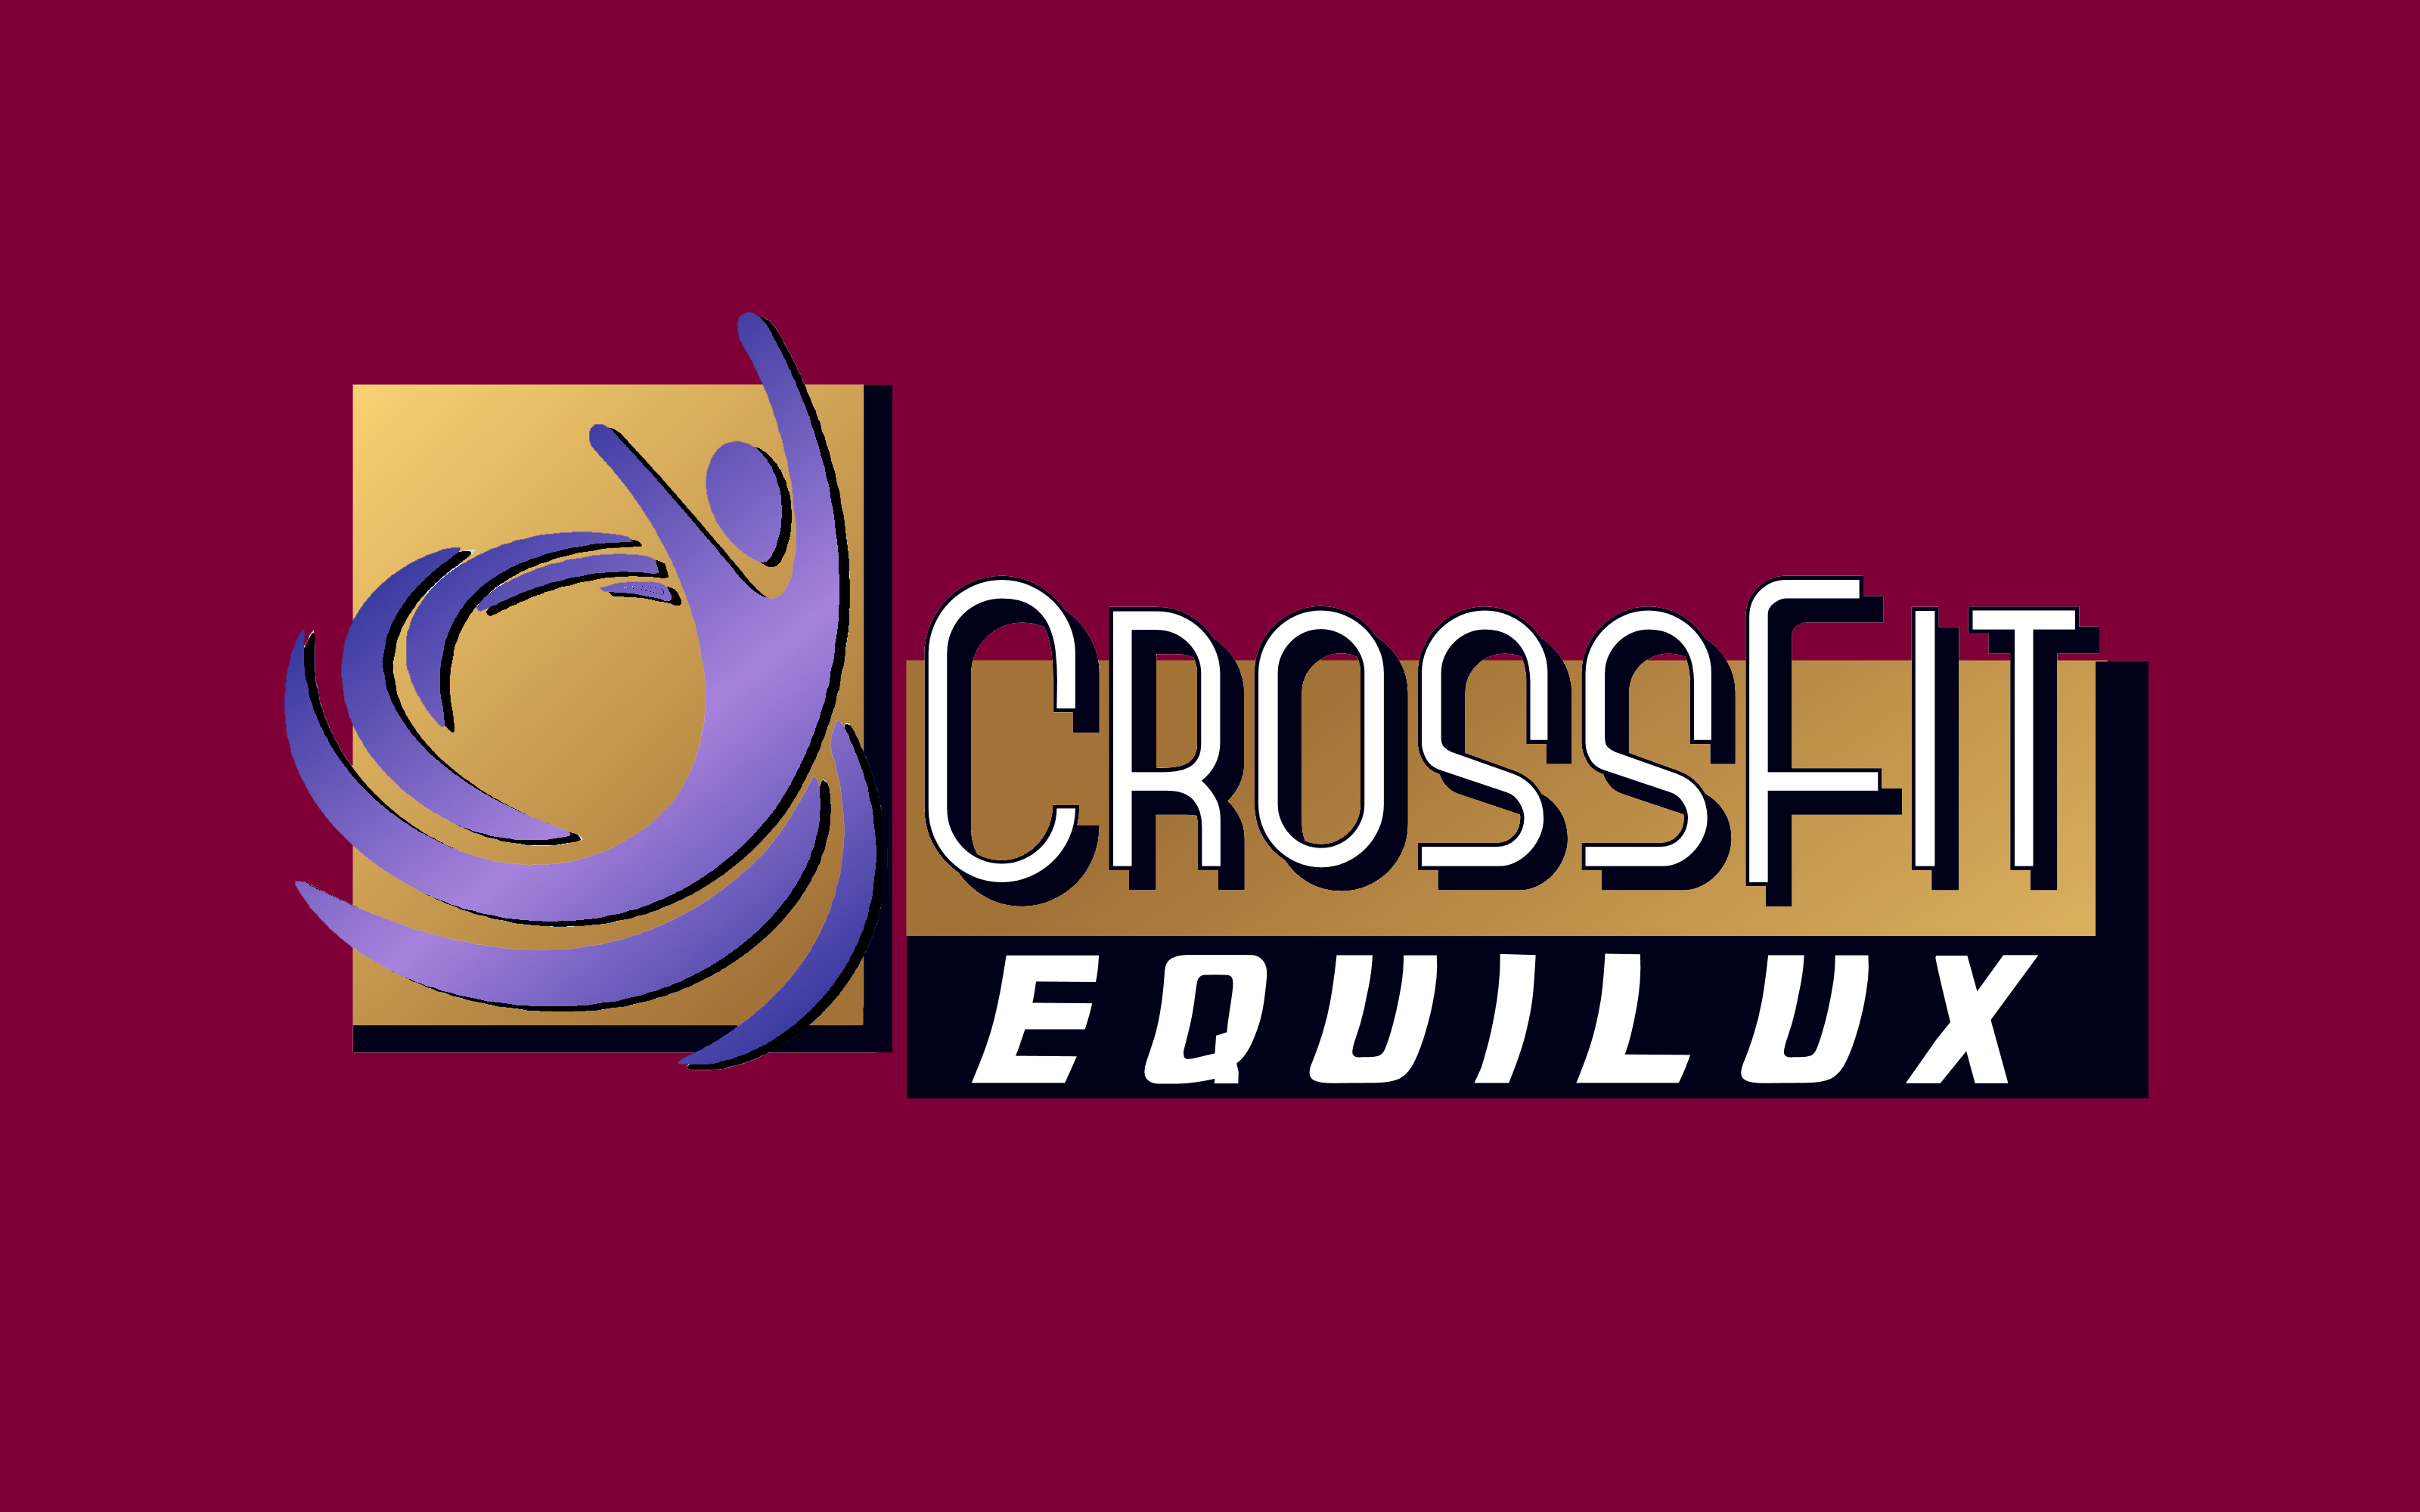 Logo Design by Roberto Bassi - Entry No. 139 in the Logo Design Contest Unique Logo Design Wanted for CrossFit Equilux.